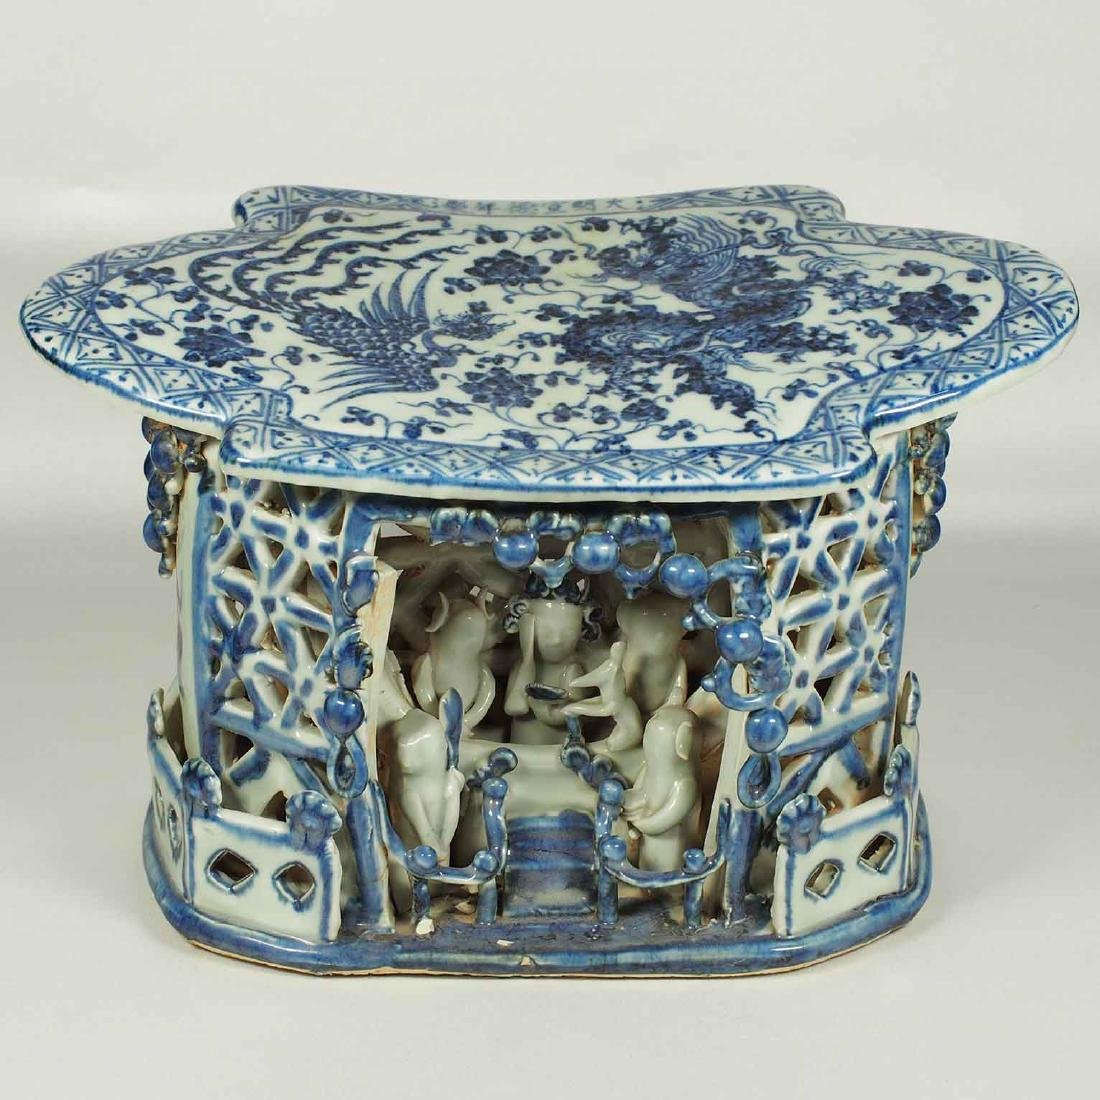 Arm Rest with Dragon and Phoenix, Xuande Mark, mid Ming